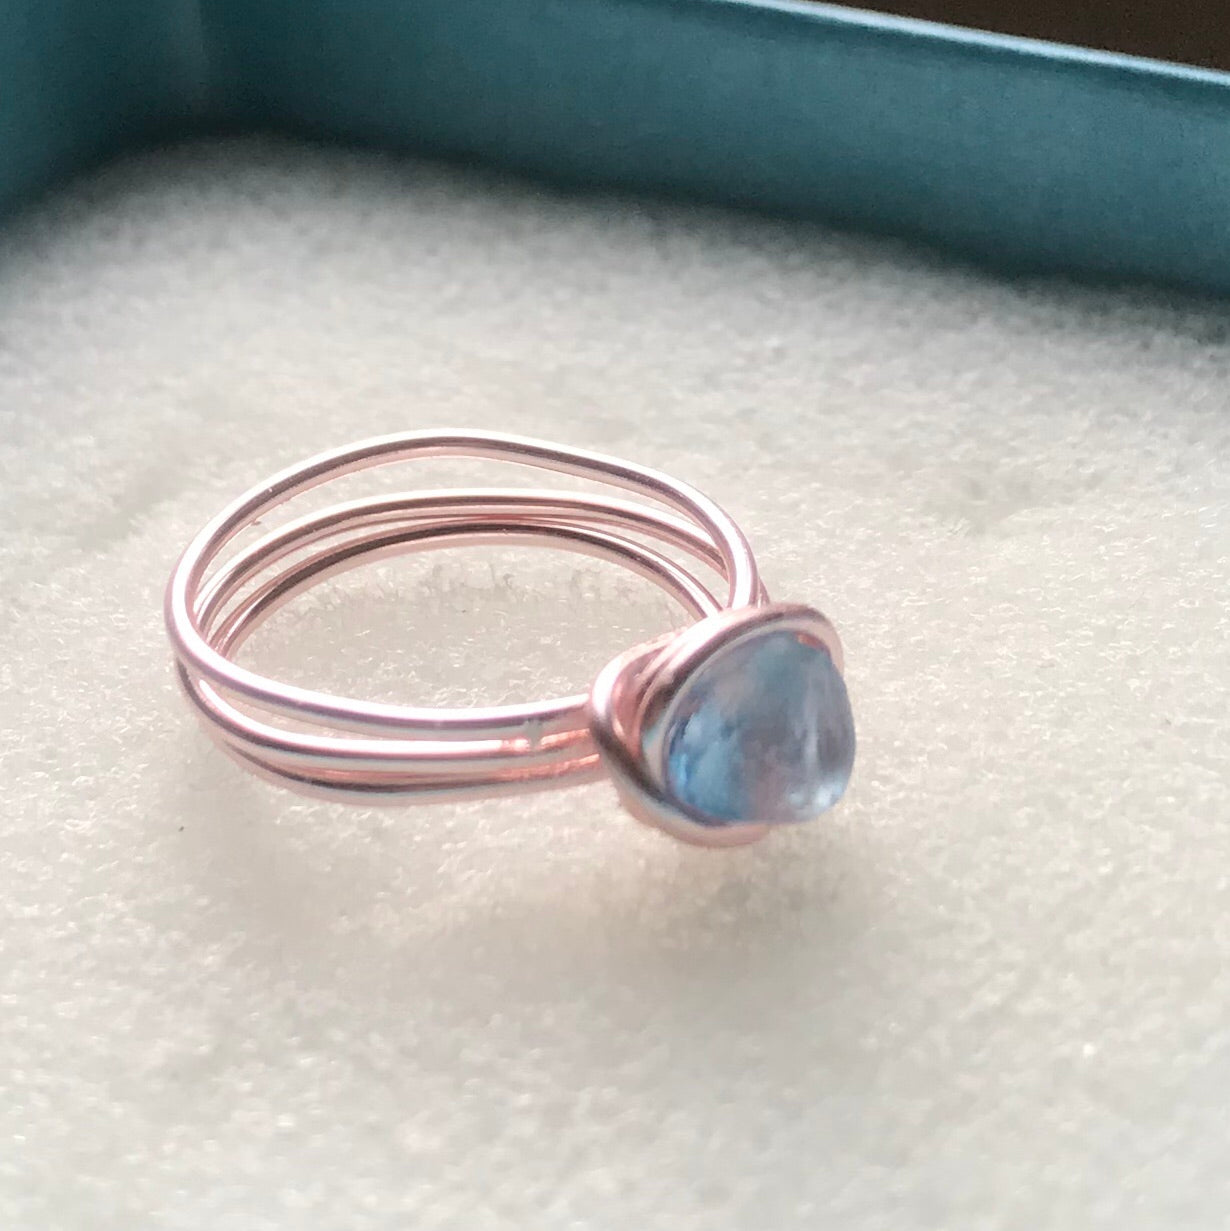 Gorgeous Blue Sea Glass On Rose Gold Coloured Wire - Size L